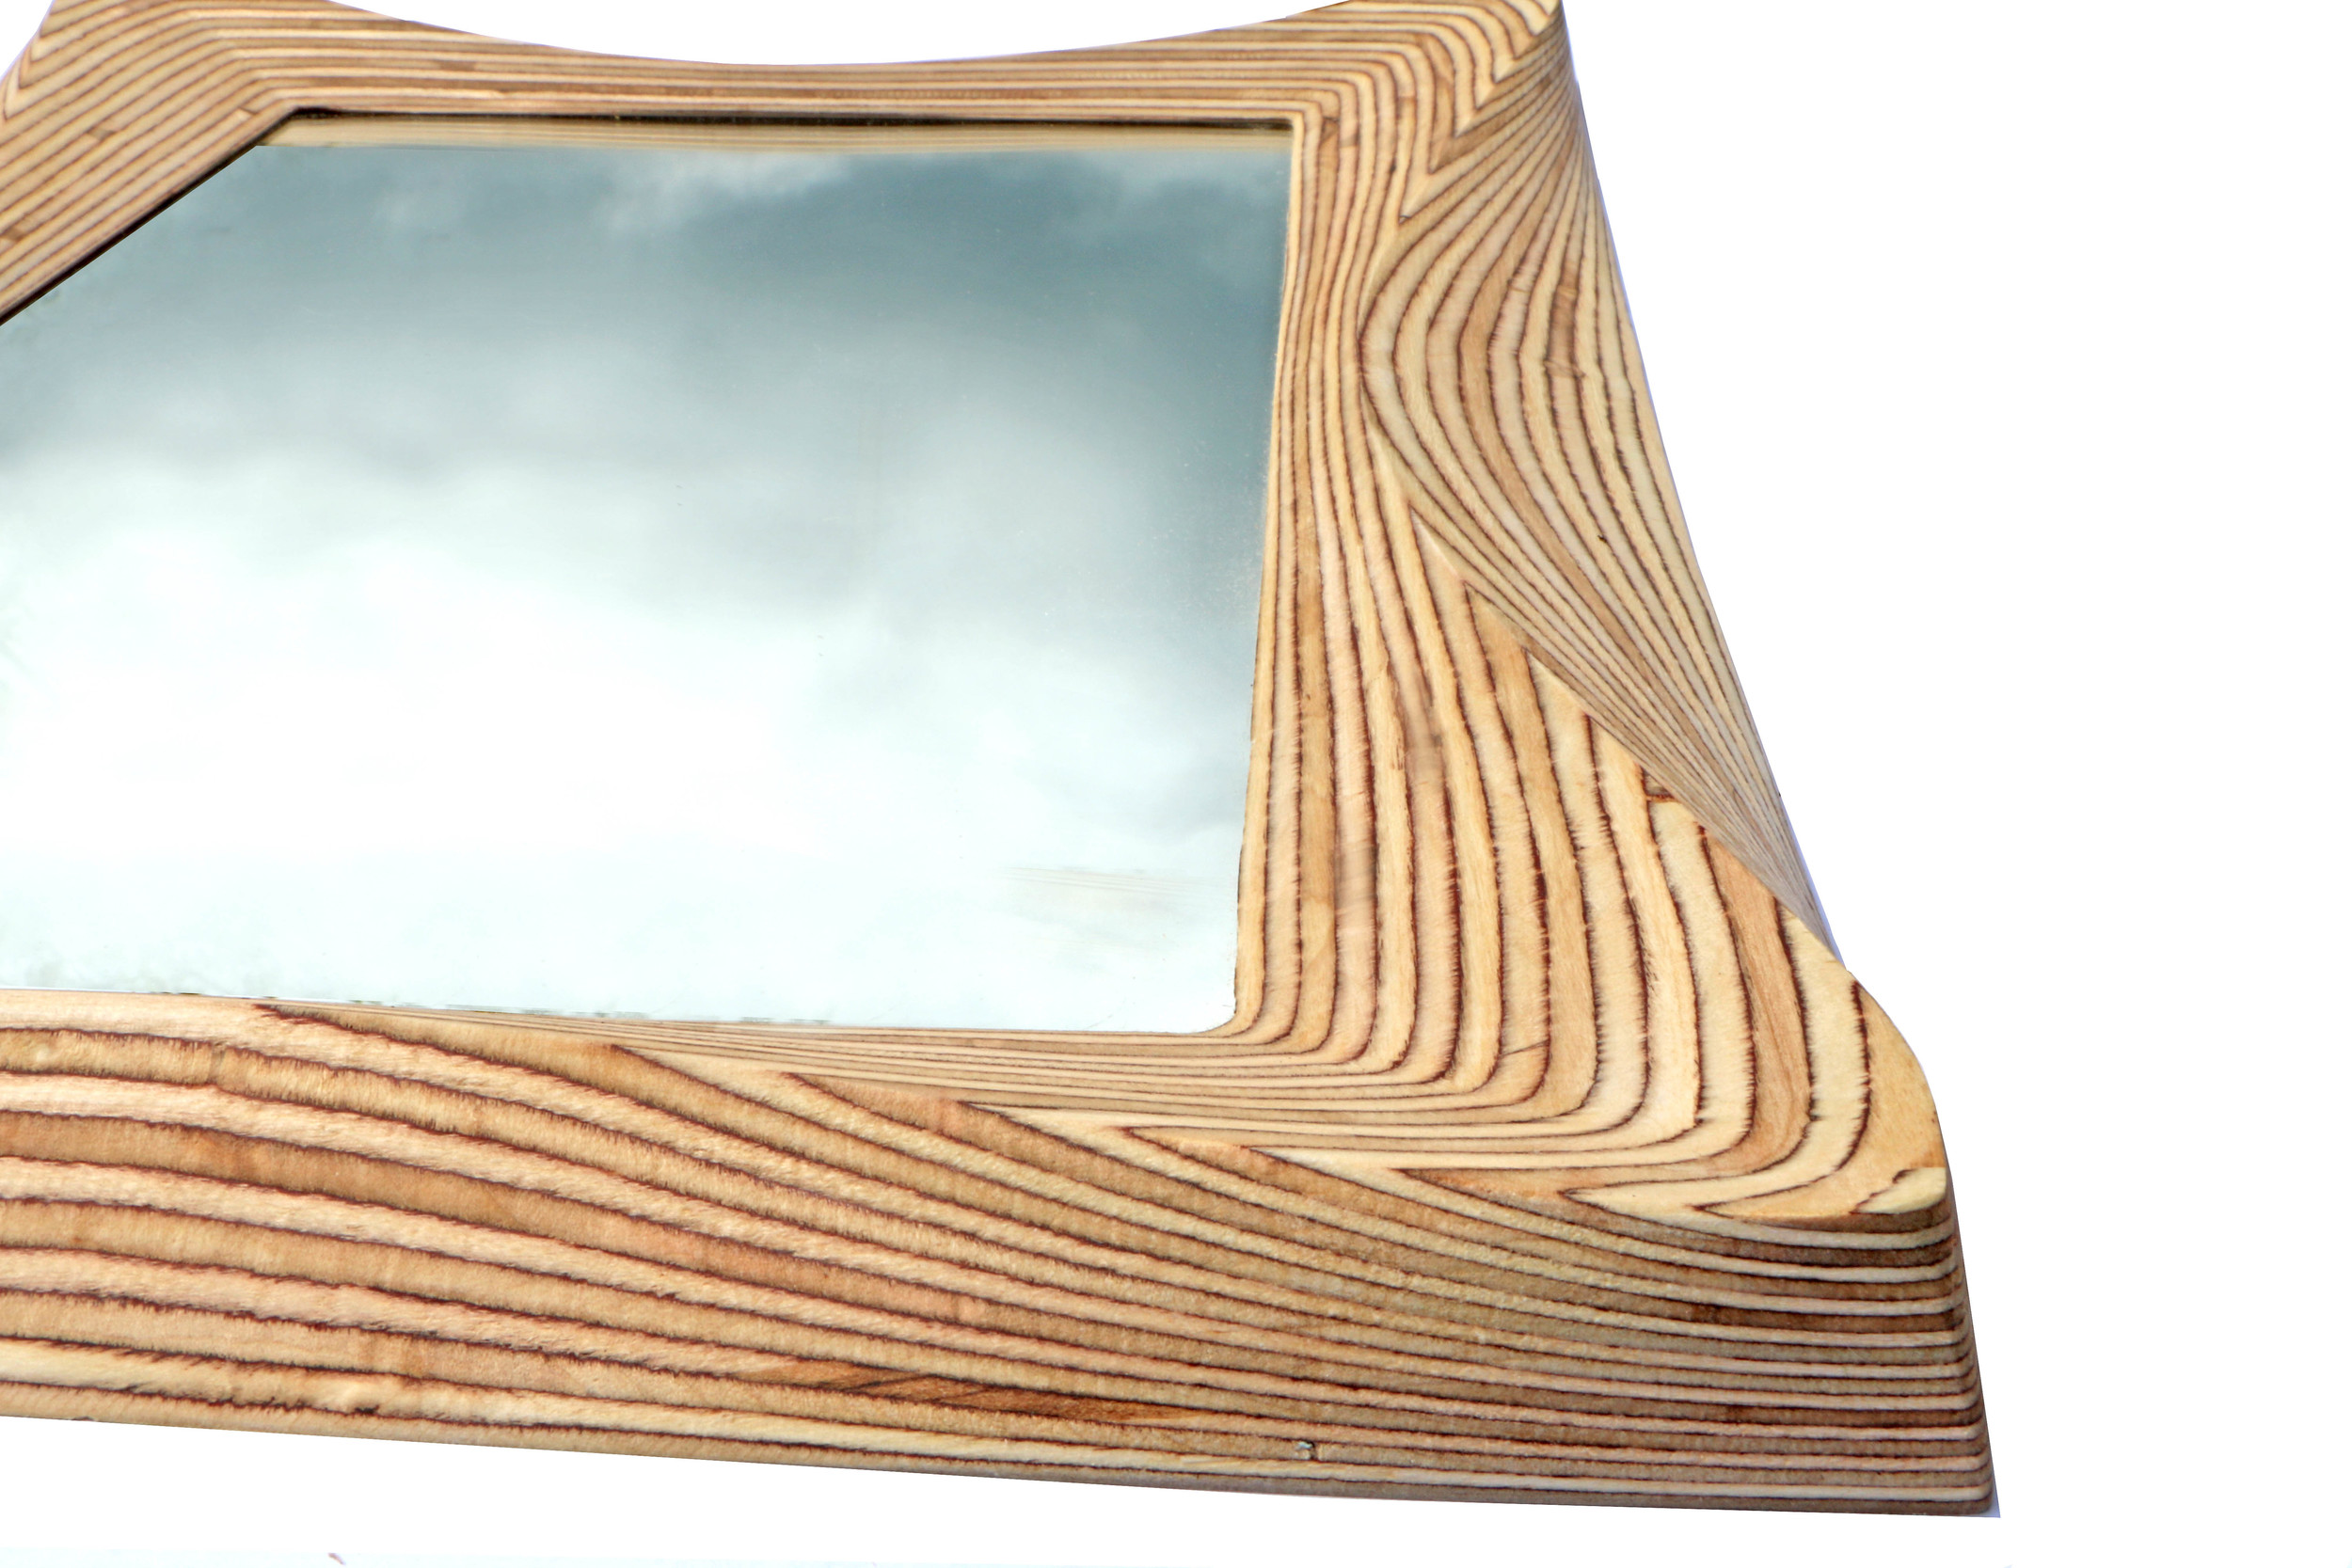 SurreyWoodsmiths Wooden Mirror Frame